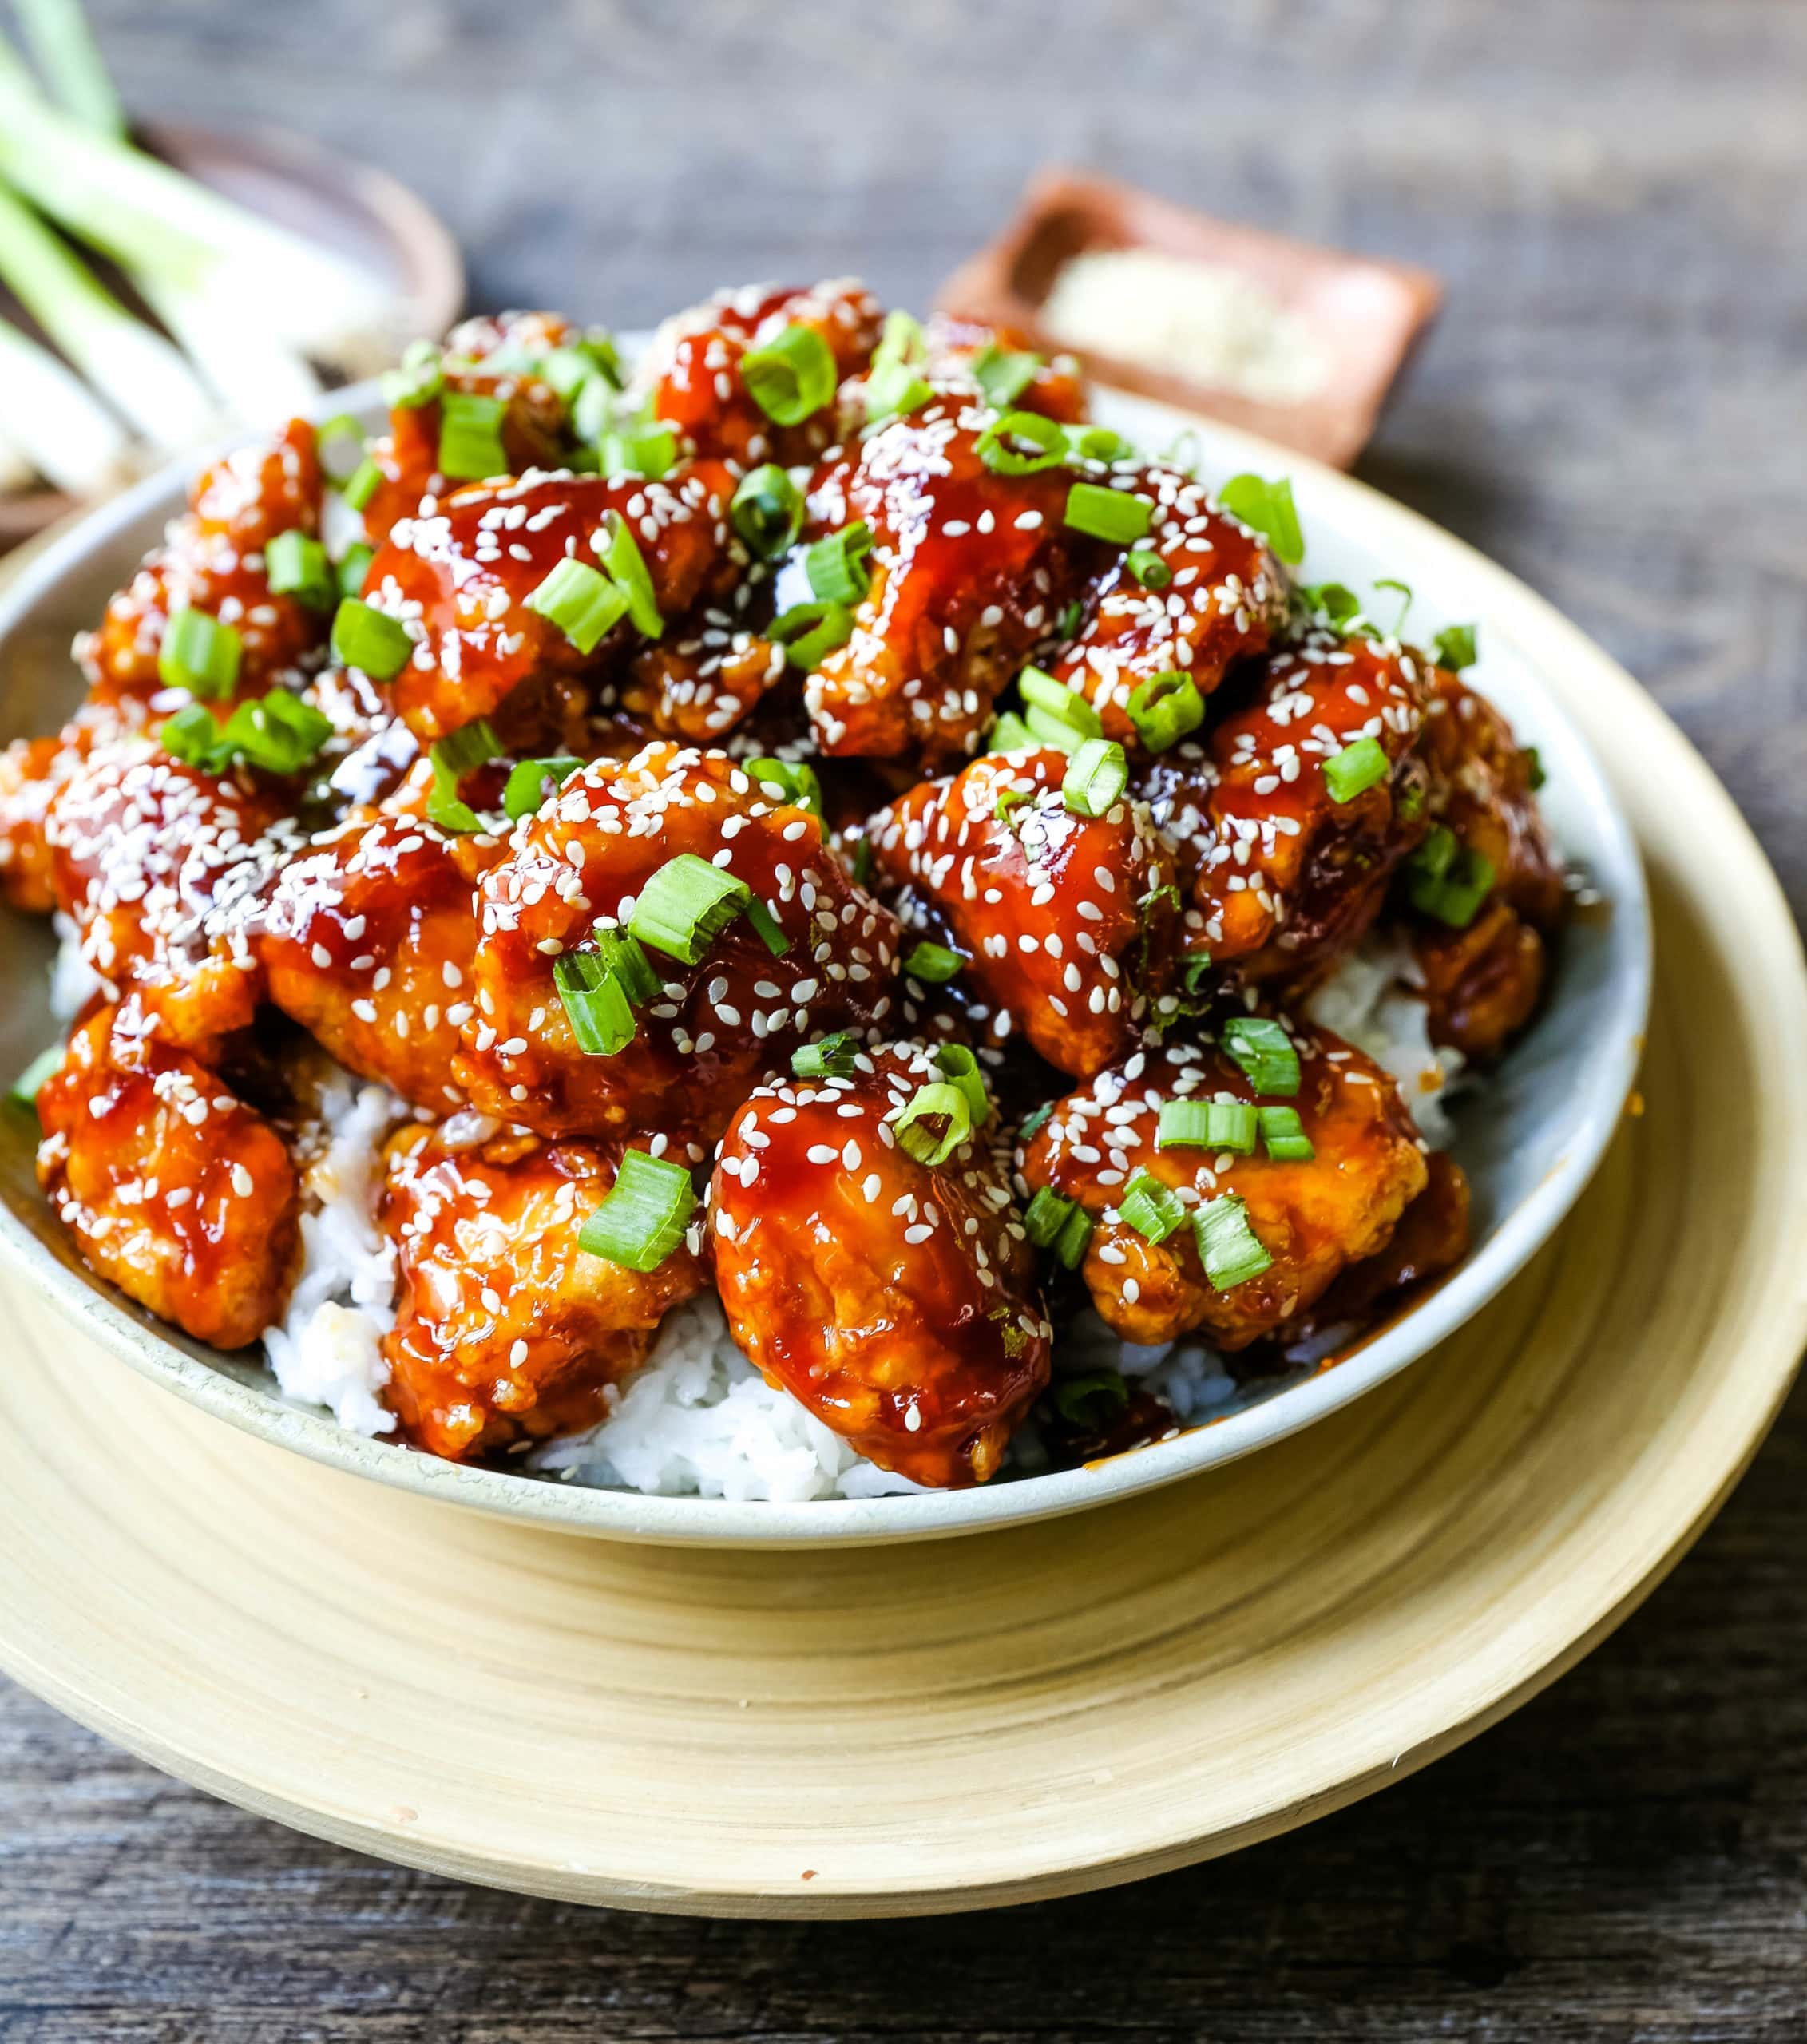 Sesame Chicken. Homemade Chinese Sesame Chicken made with crispy fried chicken covered in a sweet and sour sauce. The ultimate sesame chicken recipe is way better than take-out. www.modernhoney.com #sesamechicken #chinesefood